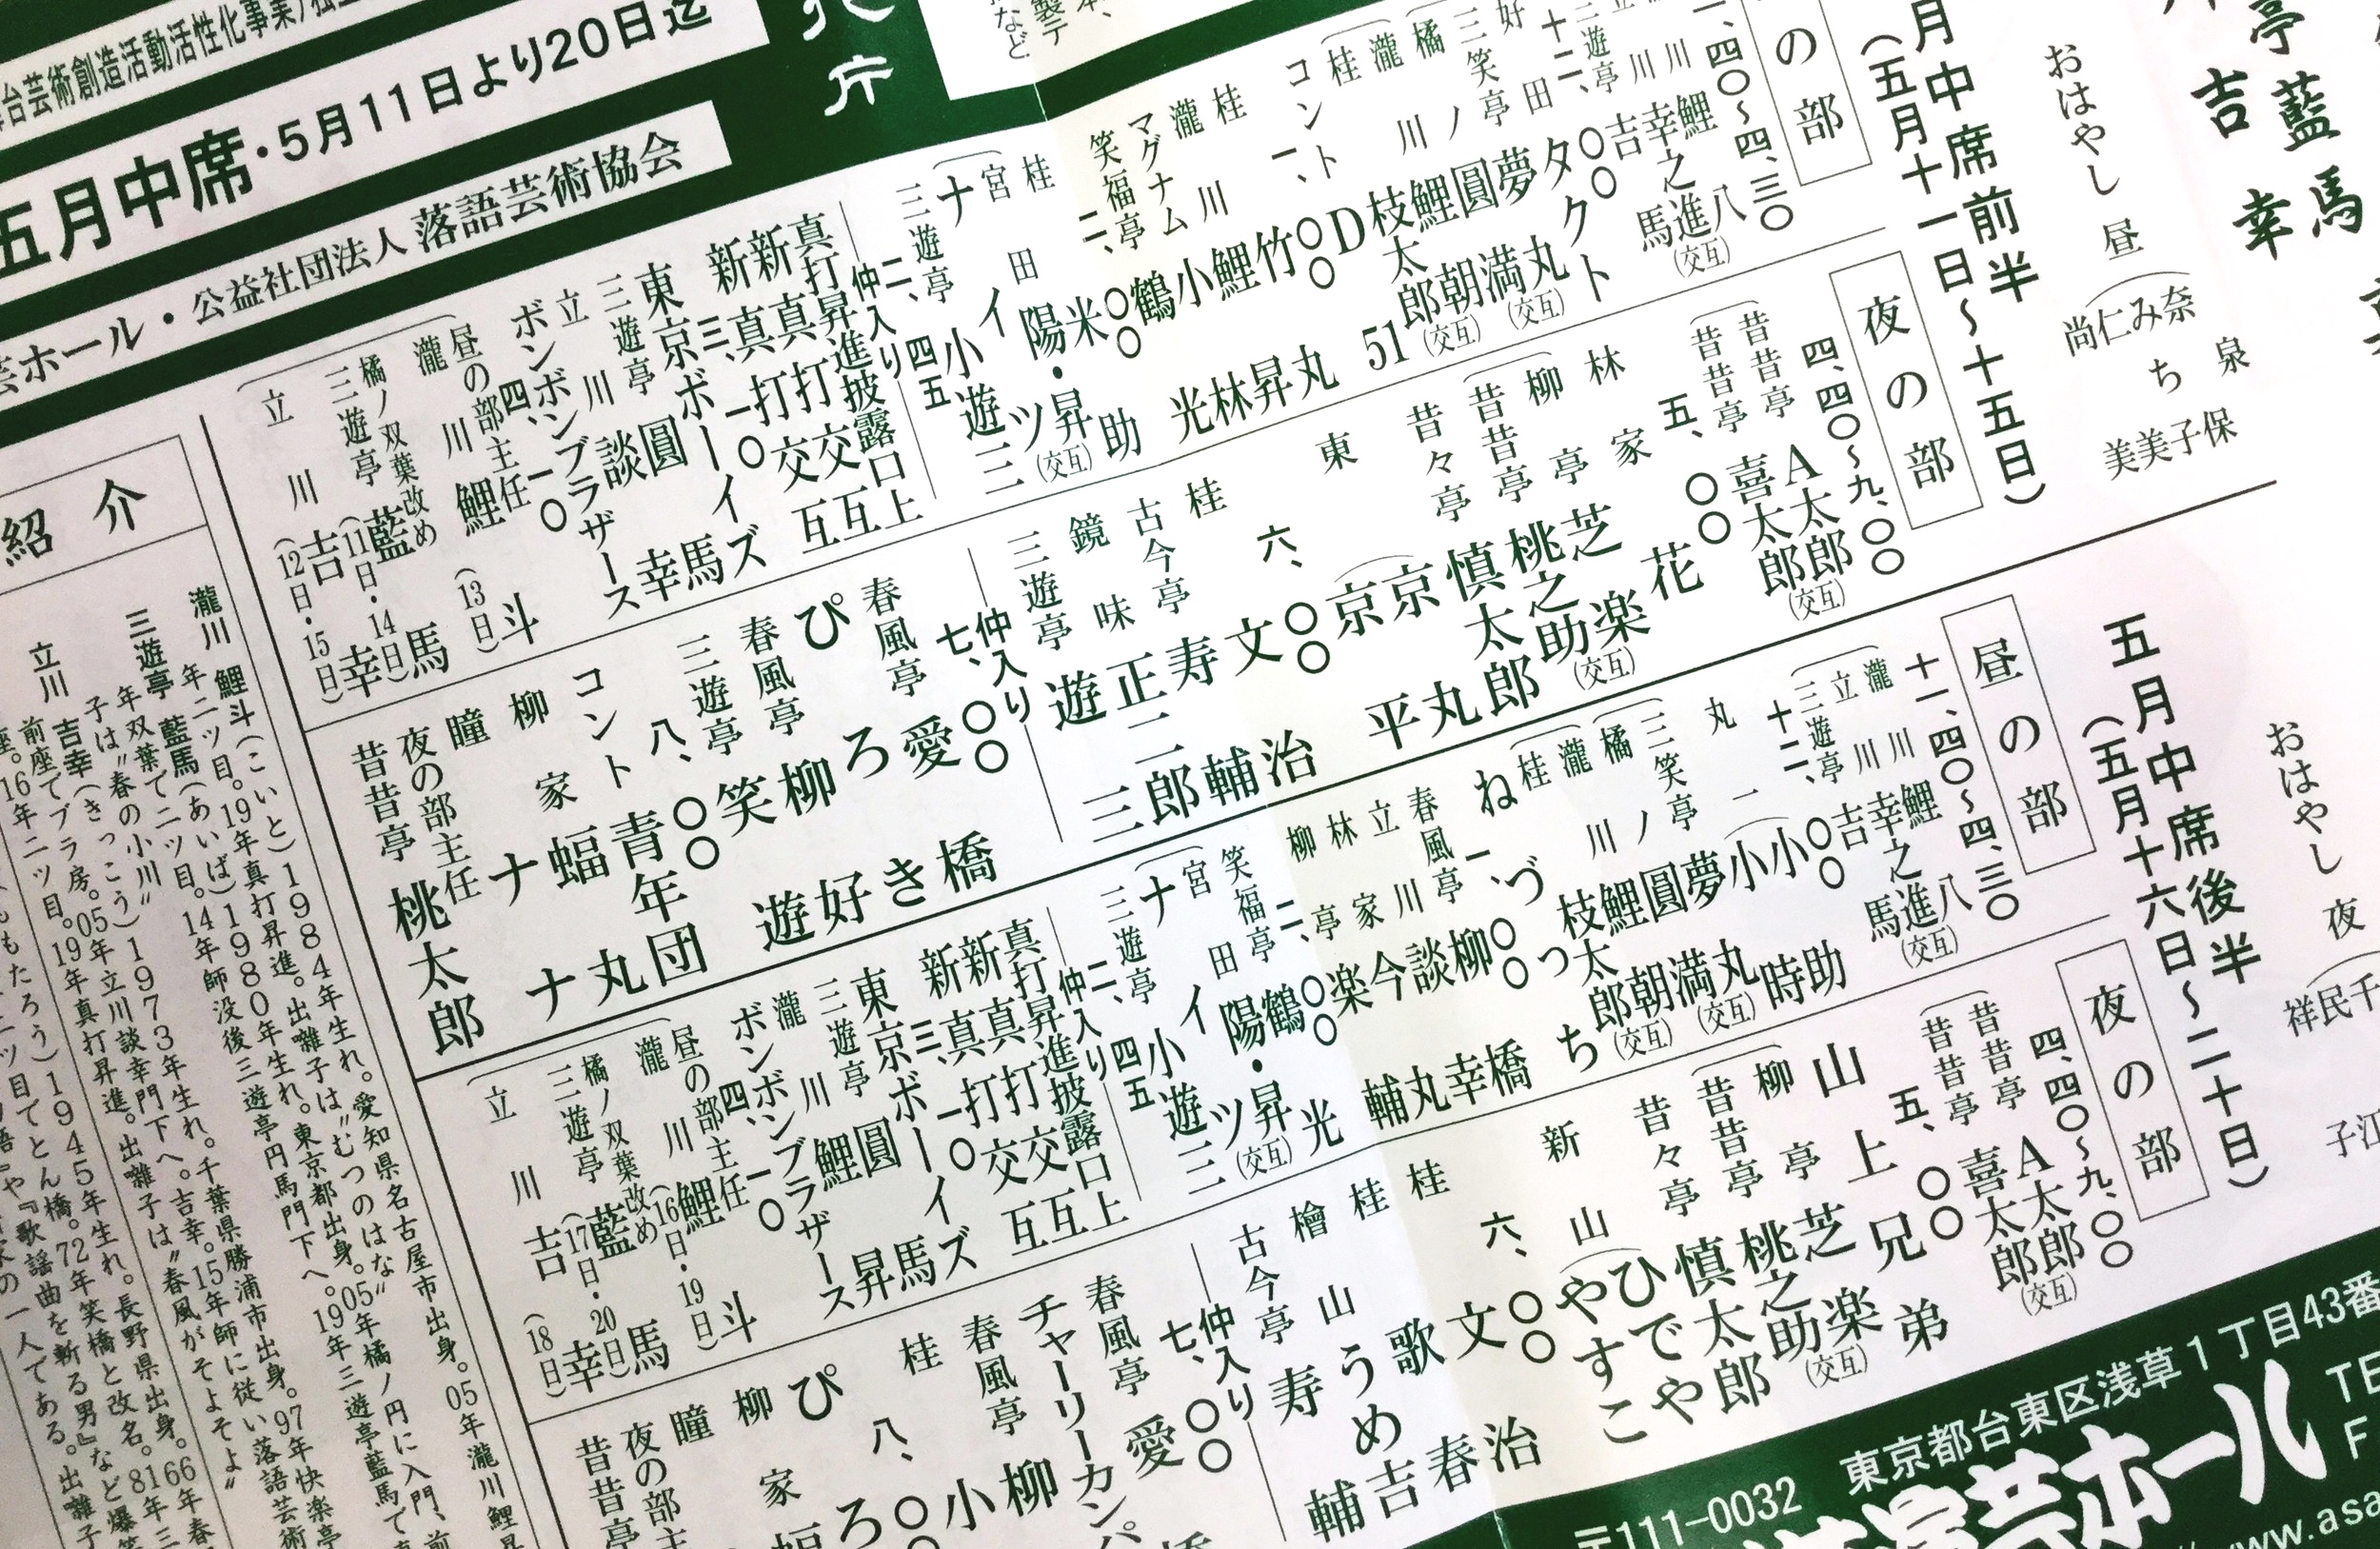 Inside the program for Aiba's promotion and performance. The ceremony and performance is just part of a day at the  yose  with many other performers taking the stage.